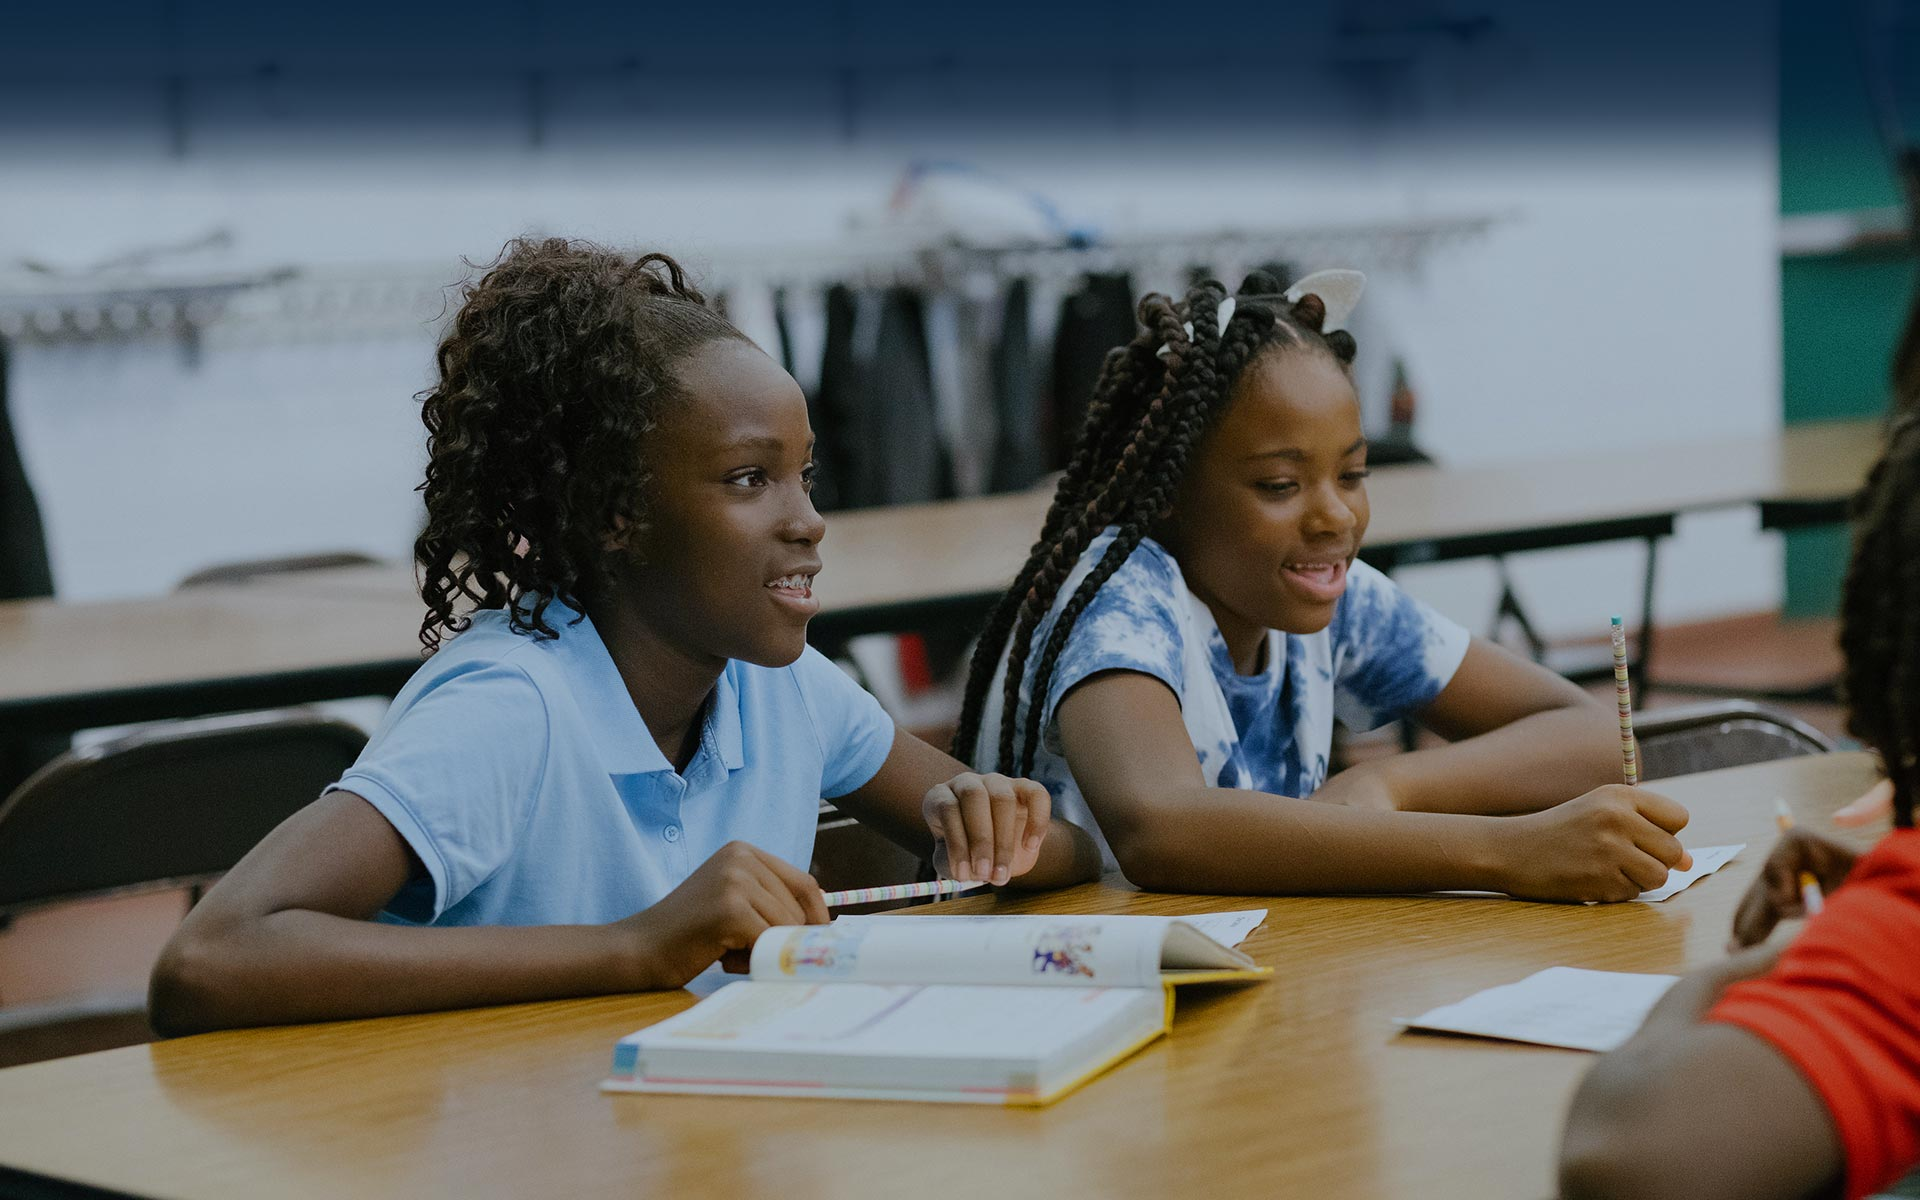 Two young girls smile and work on their schoolwork.